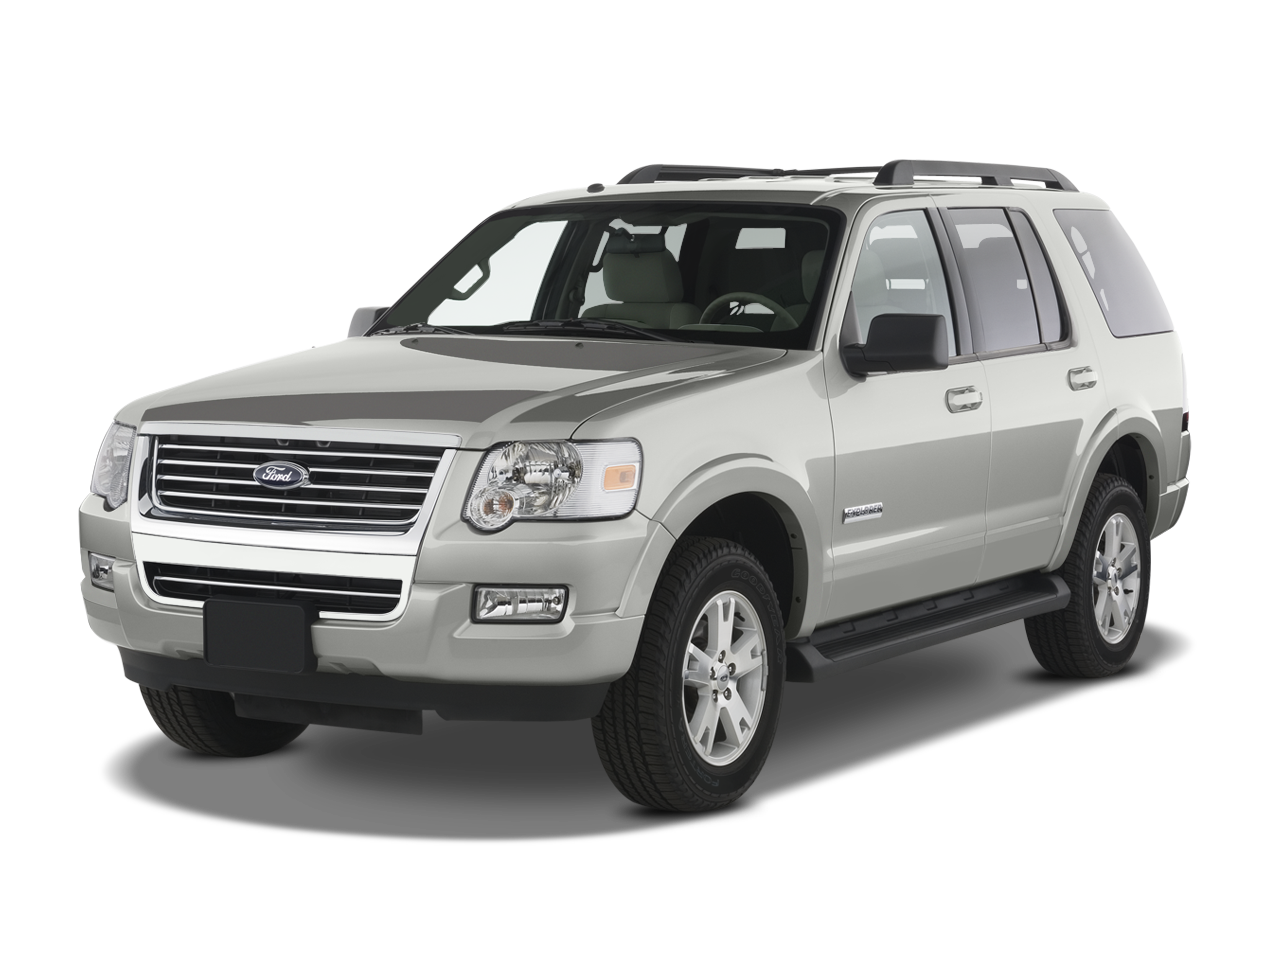 2009 Ford Explorer 4WD